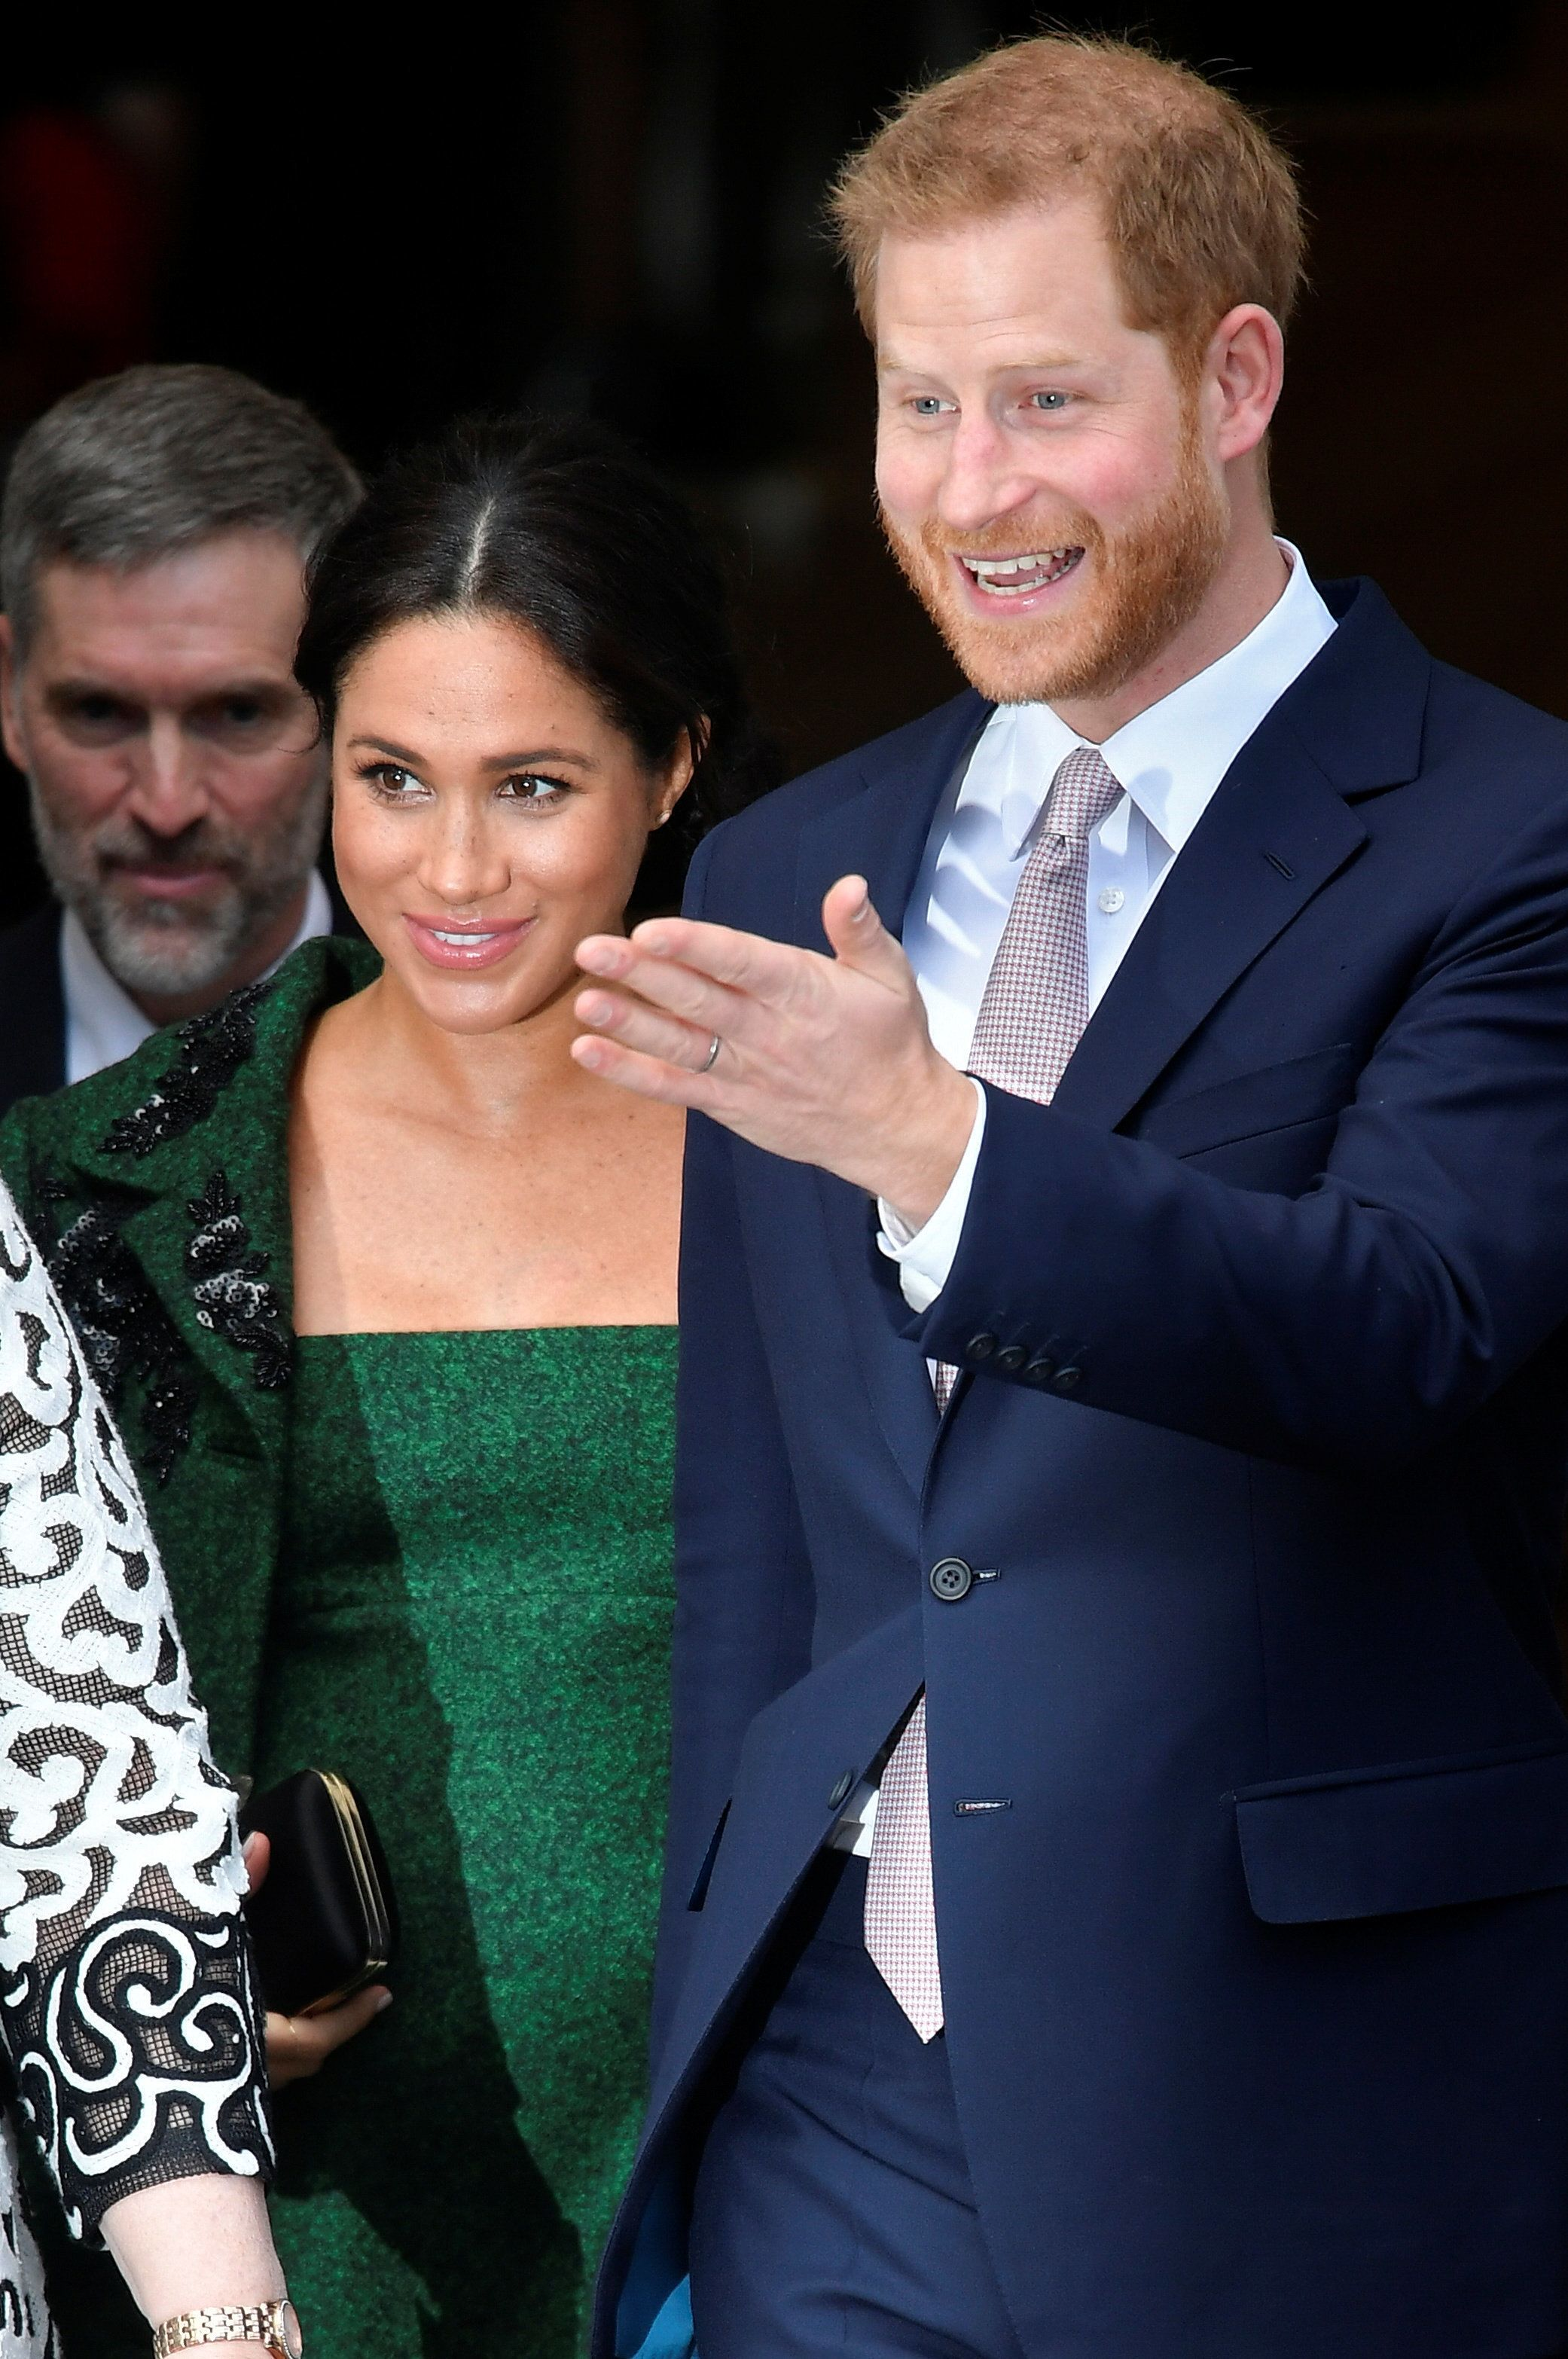 Britain's Prince Harry and Meghan, Duchess of Sussex leave after a Commonwealth Day youth event at Canada House in London, Britain March 11, 2019.  REUTERS/Toby Melville